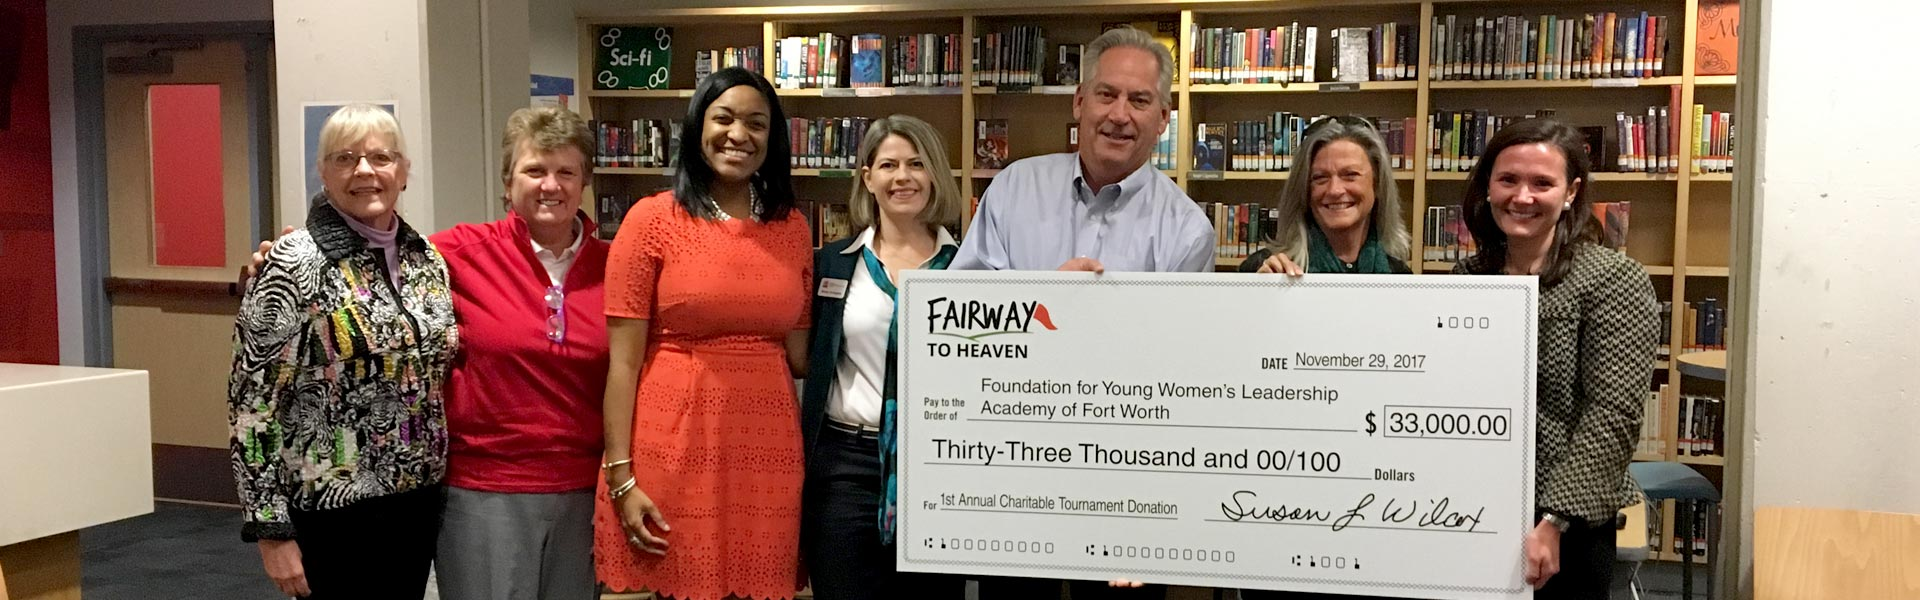 Fairway to Heaven charity check